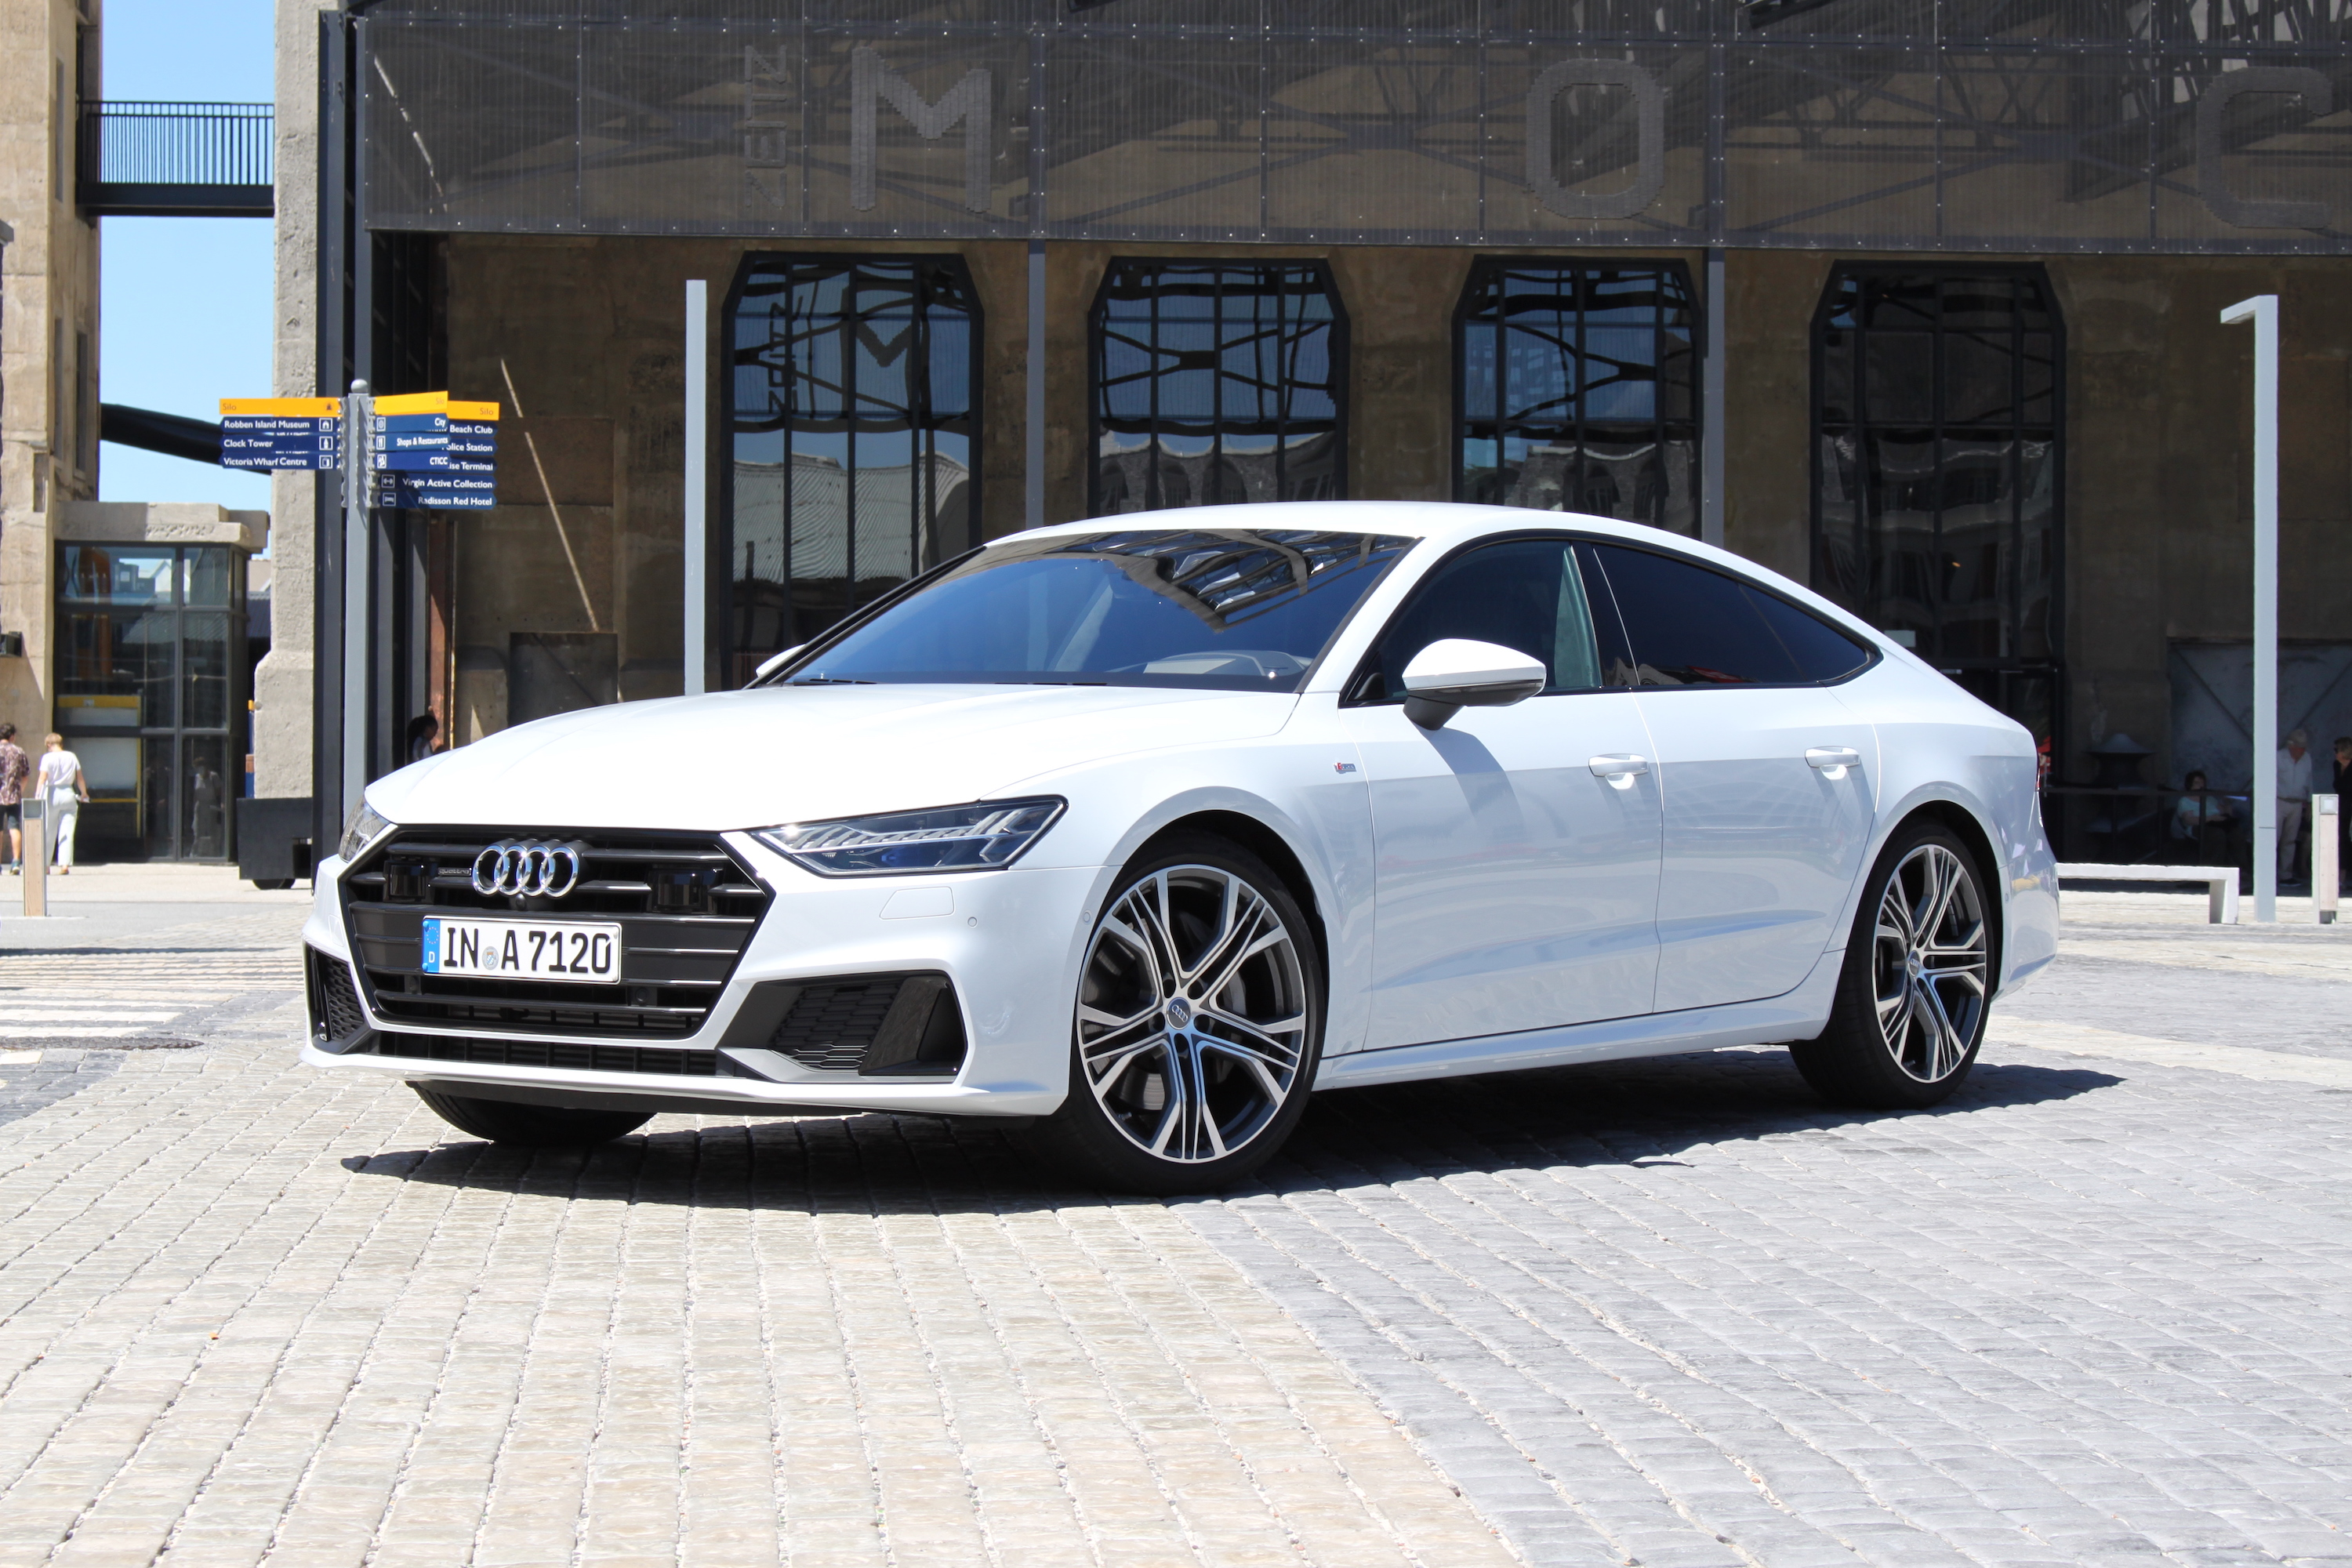 gtspirit produces one h will petrol detroit to just sportback available propel torque km and enough audi nm from tfsi ps engine of the be launch it